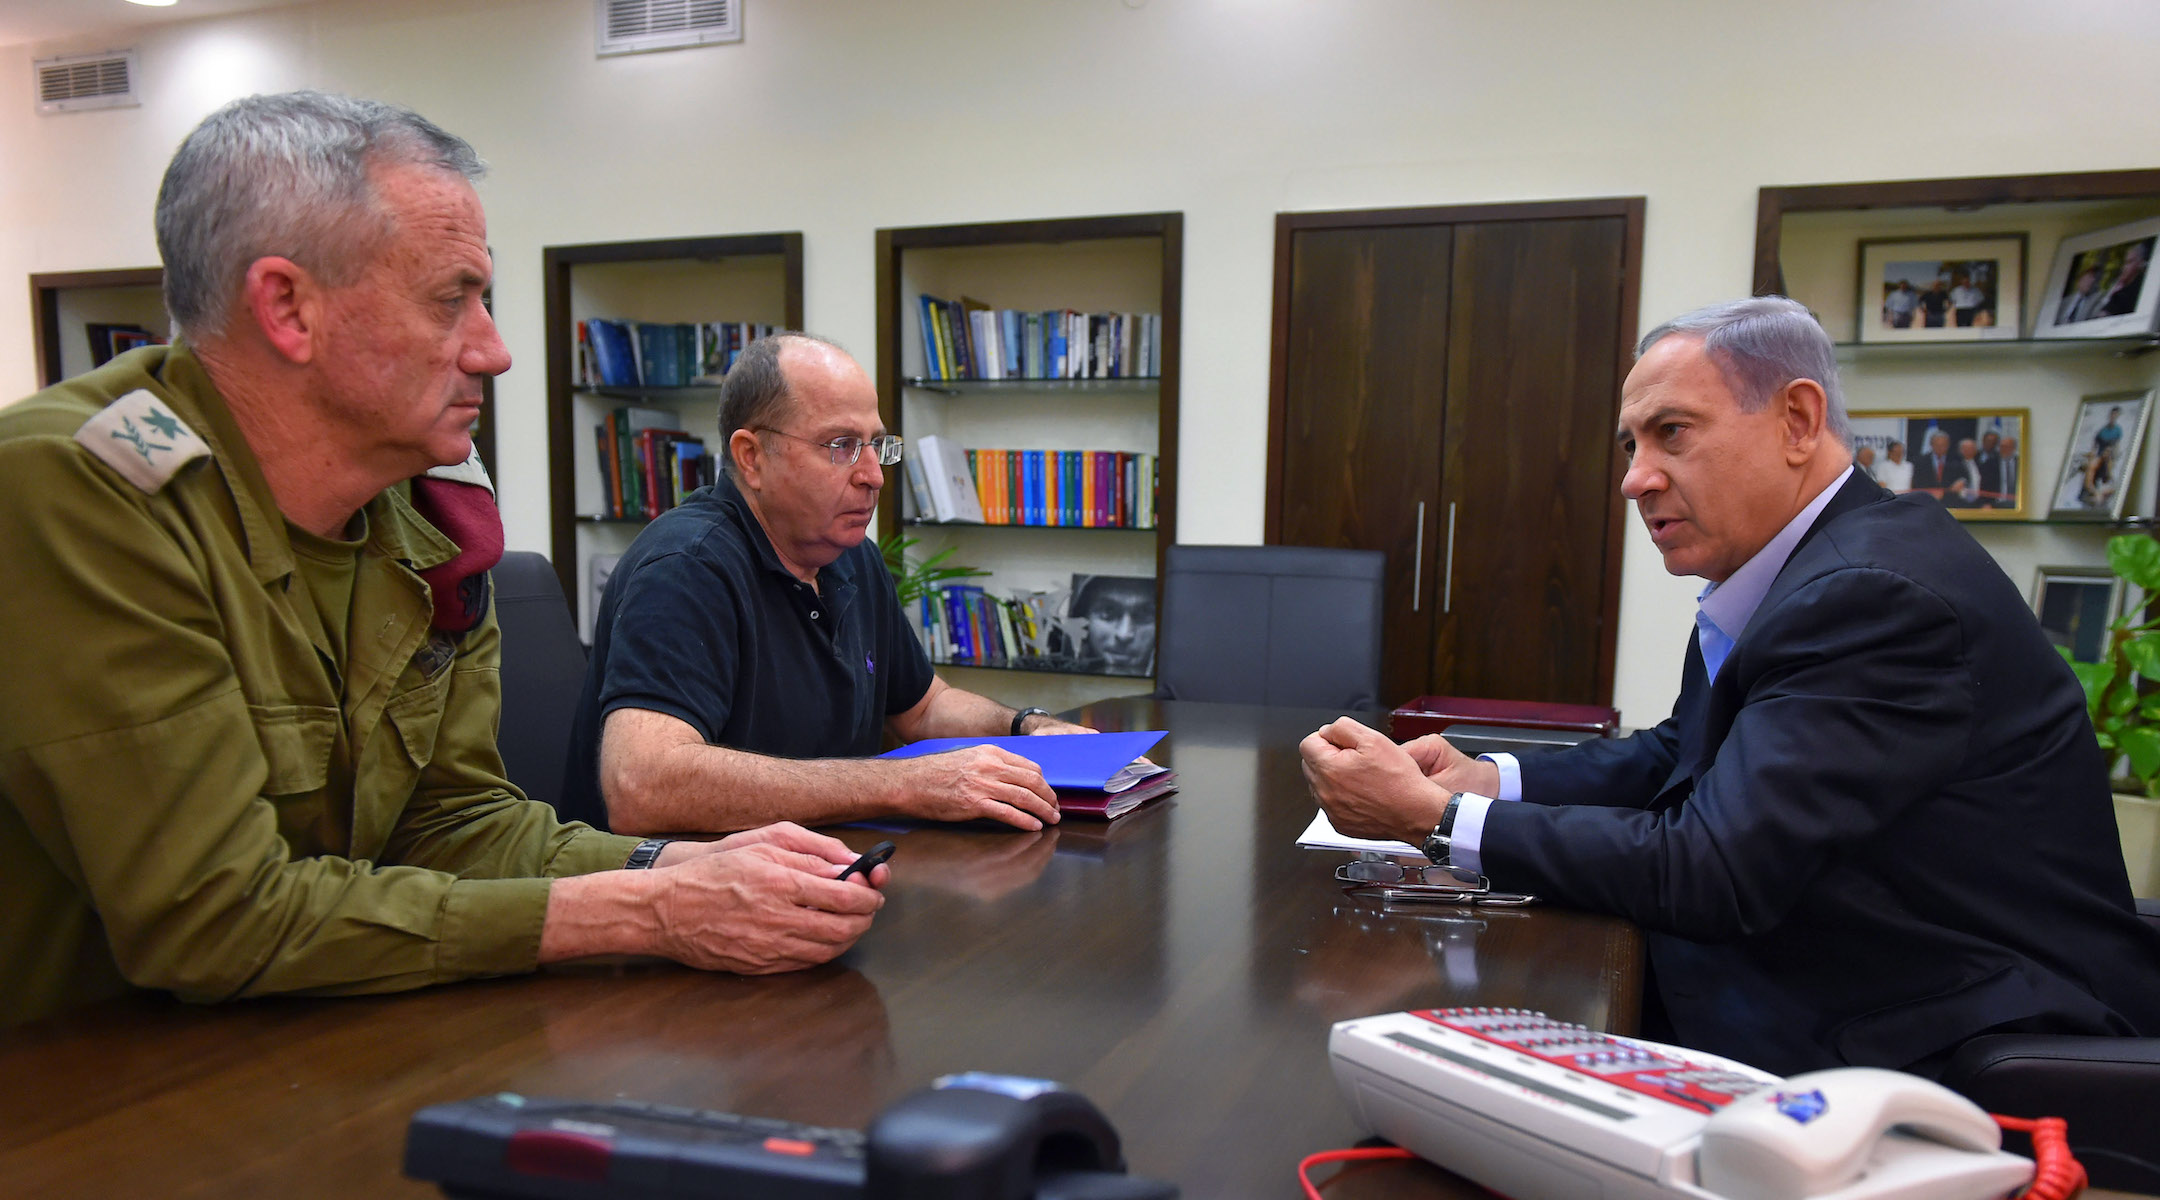 Nentanyahu, Defense Minister Moshe Yaalon and Gen. Benny Gantz (left) meet during the 2014 Gaza War. Gantz and Yaalon are now running against Netanyahu in the Israeli election, but they may all be forced to share power once it's over. (Ariel Harmoni/Getty Images)